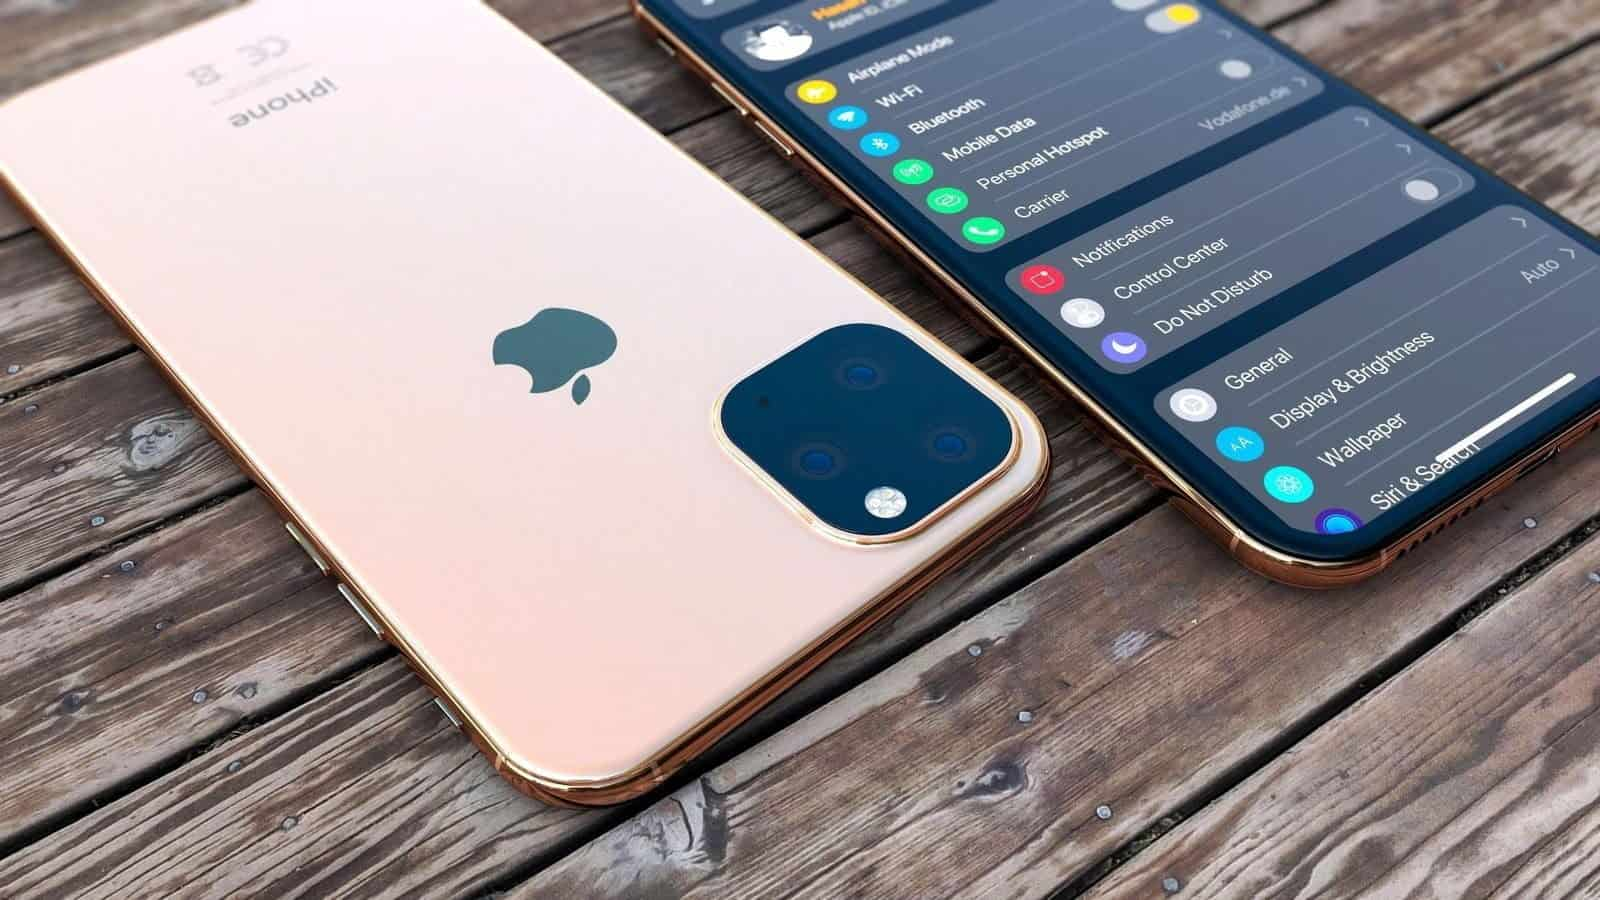 5g versions of the iphone